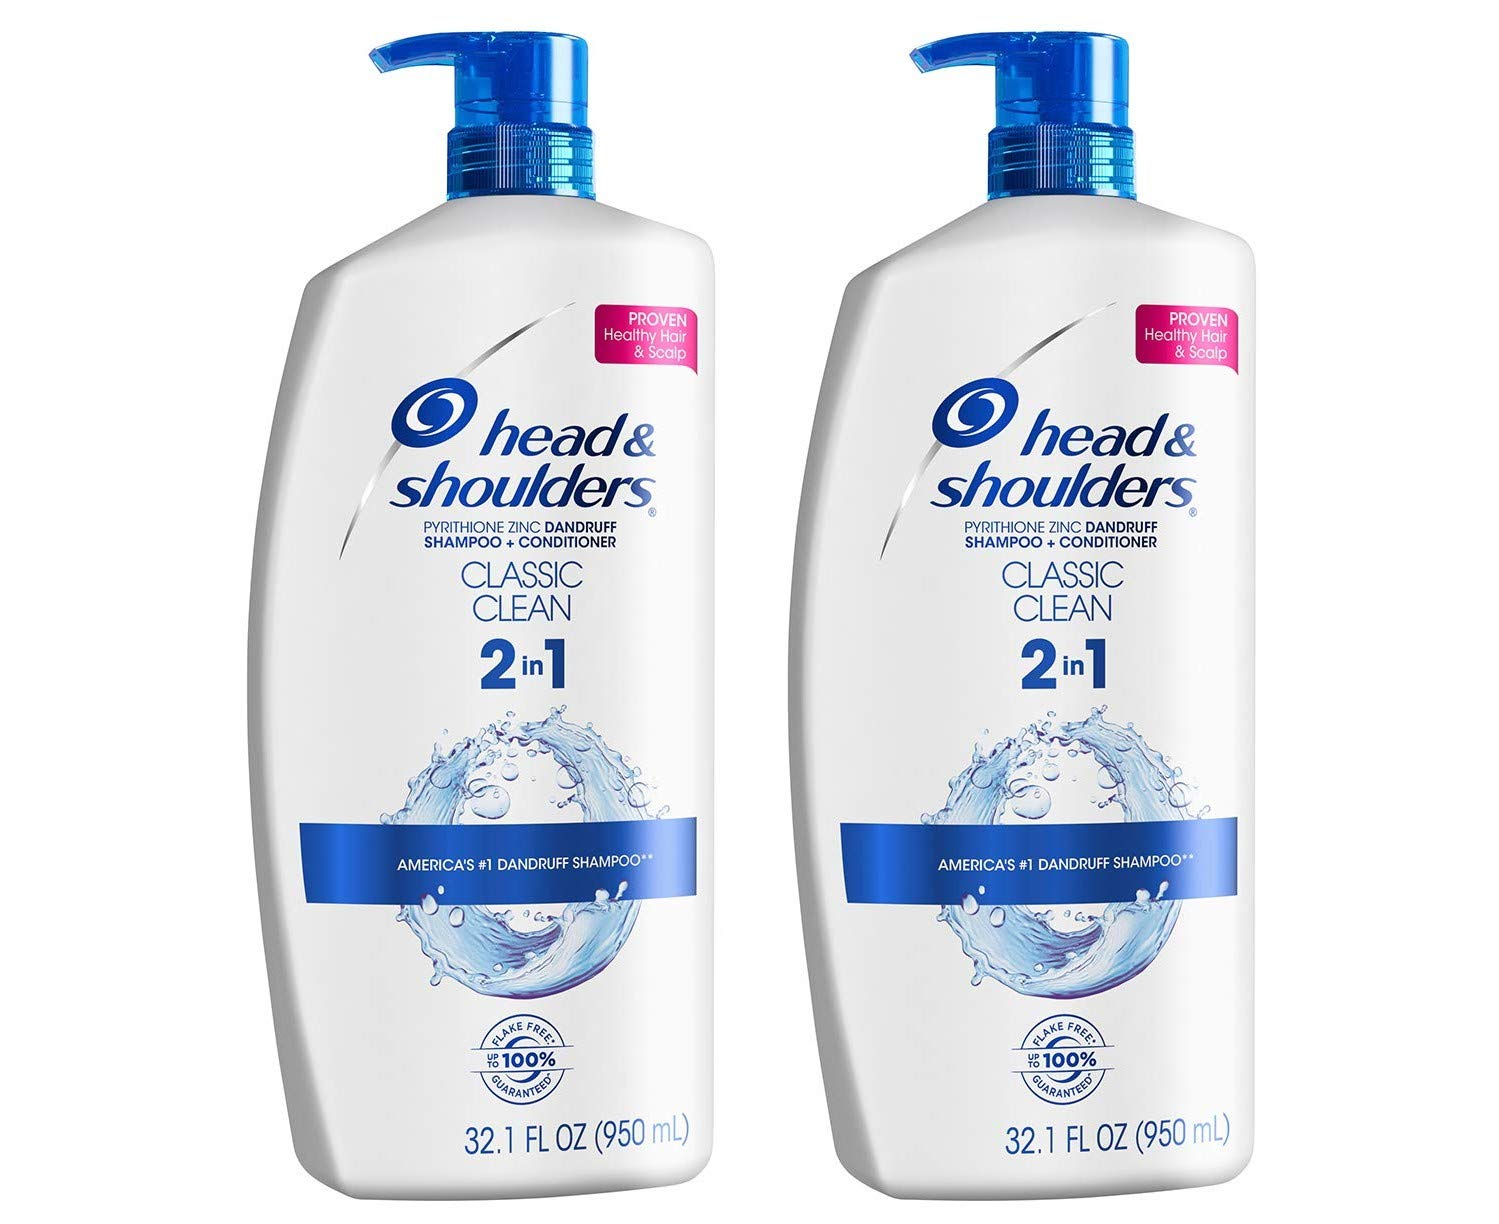 Head and Shoulders Shampoo and Conditioner 2 in 1, Classic, 32 oz Twin Pack - YMMV - $7.45